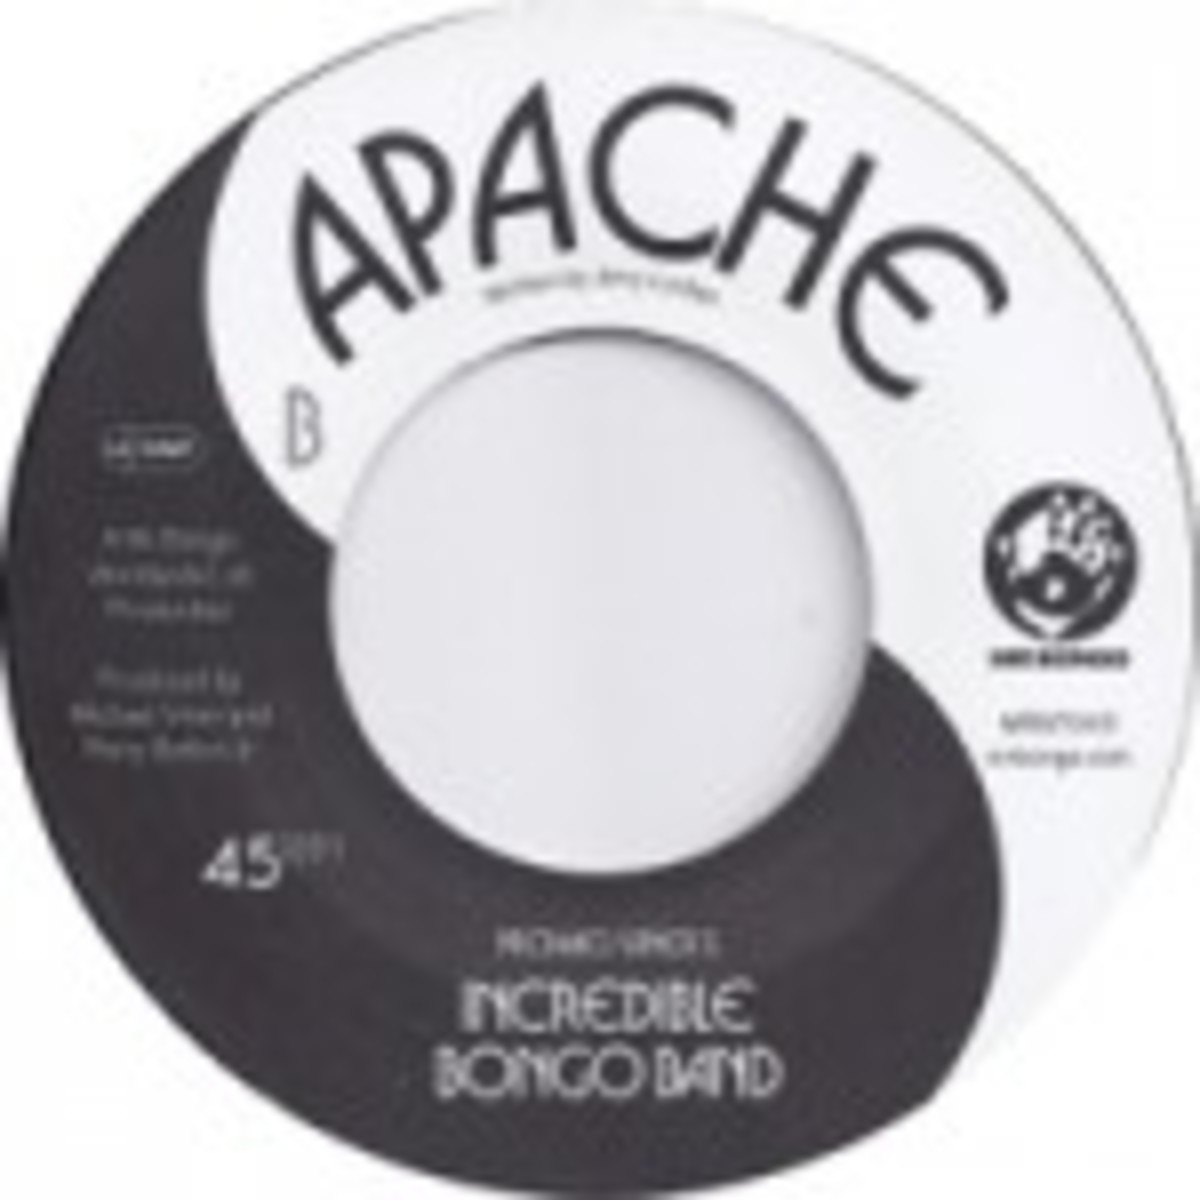 Michael Viner's Incredible Bongo Band Apache